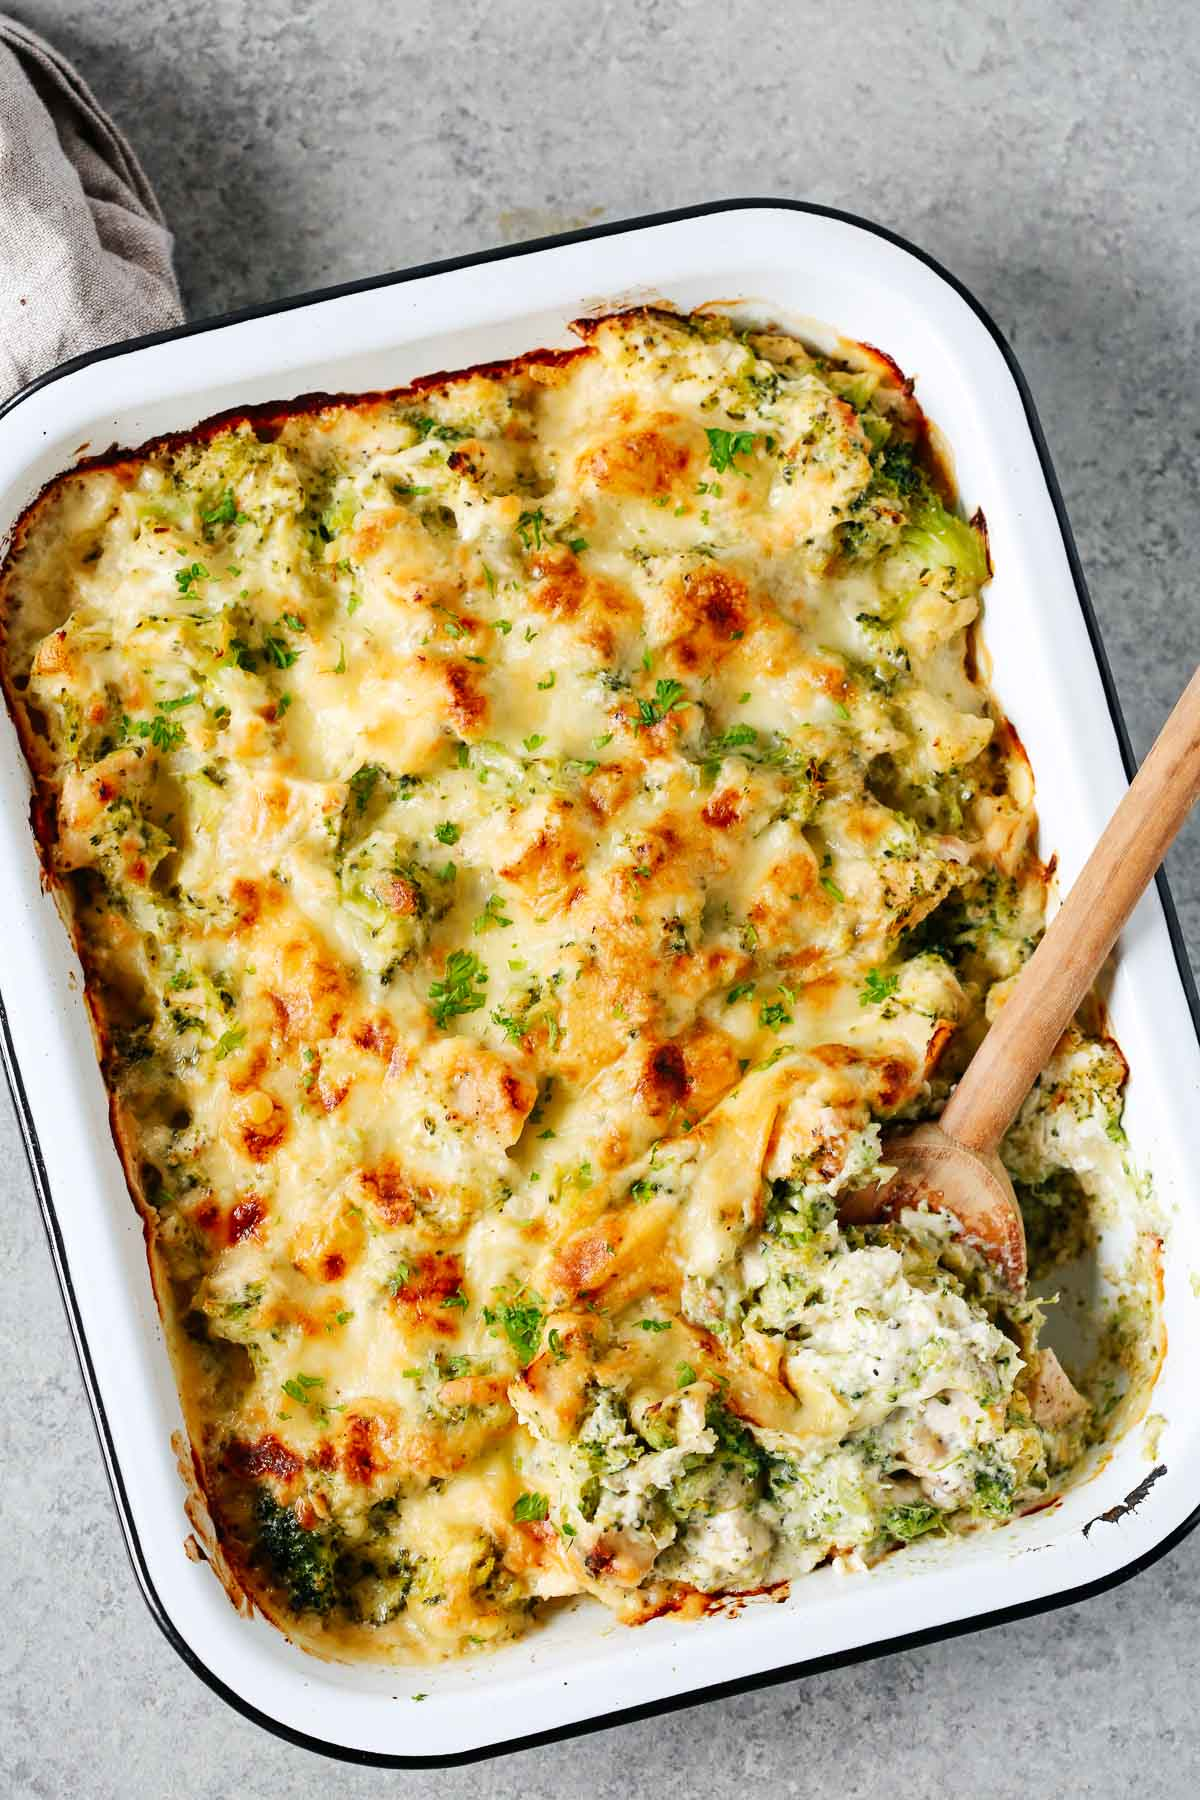 baked dish with broccoli and cauliflower with melted cheese on top